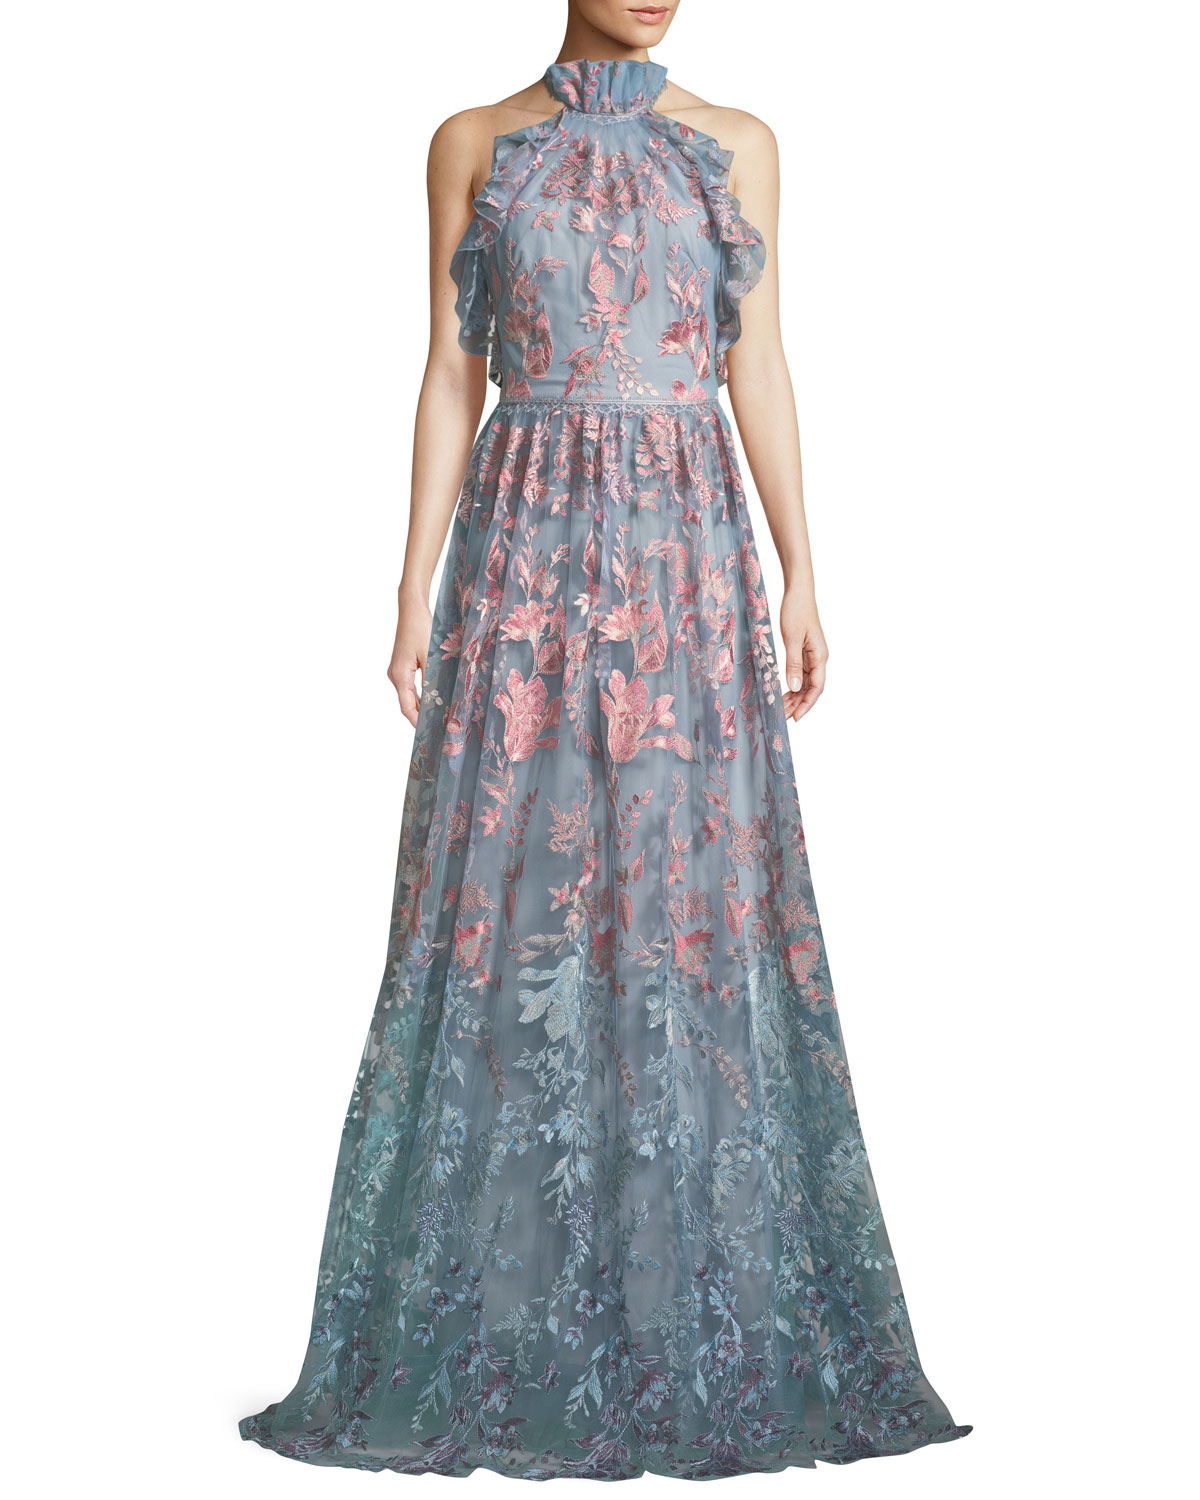 Marchesa Notte Ombré Floral Embroidered Halter Gown | Neiman Marcus